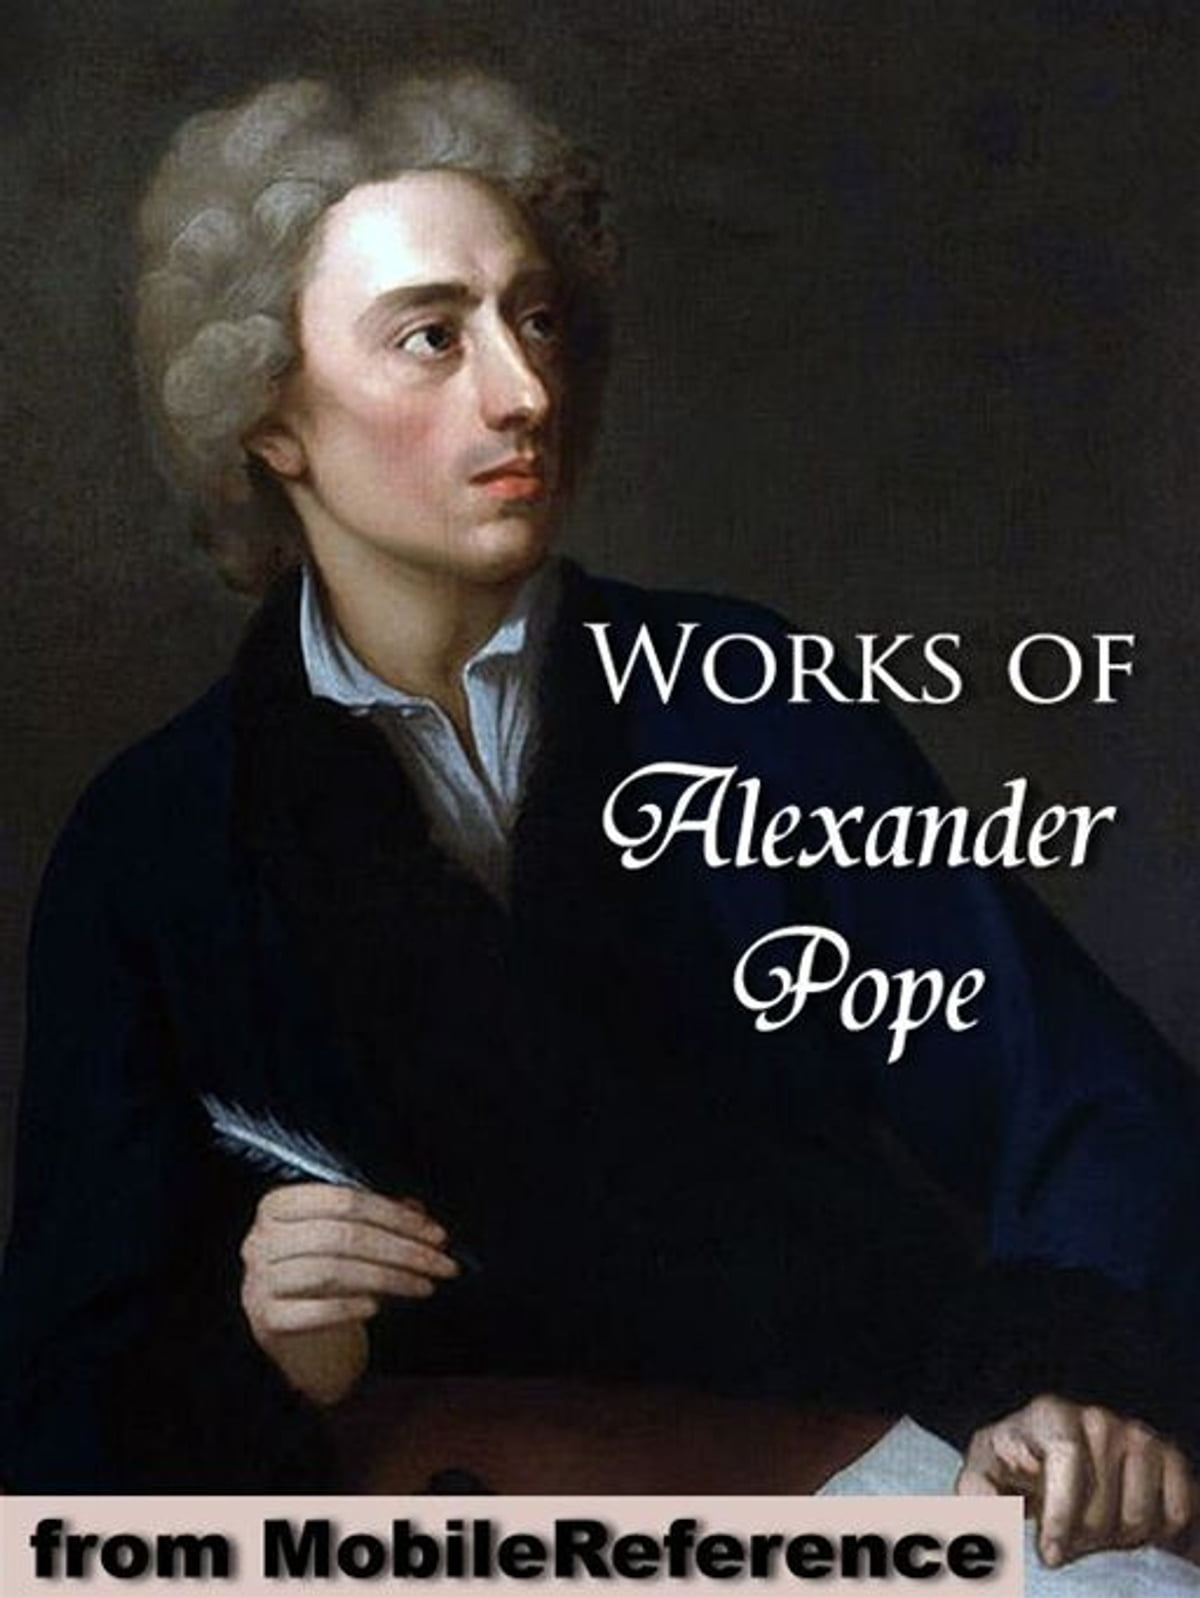 Essay Writing Business Works Of Alexander Pope Includes An Essay On Criticism An Essay On Man  The Rape Of The Lock Moral Essays Poetical Works In  Volumes And The  Iliad  Persuasive Essay Examples High School also Essays On Health Works Of Alexander Pope Includes An Essay On Criticism An Essay On Man  The Rape Of The Lock Moral Essays Poetical Works In  Volumes And The   Pollution Essay In English